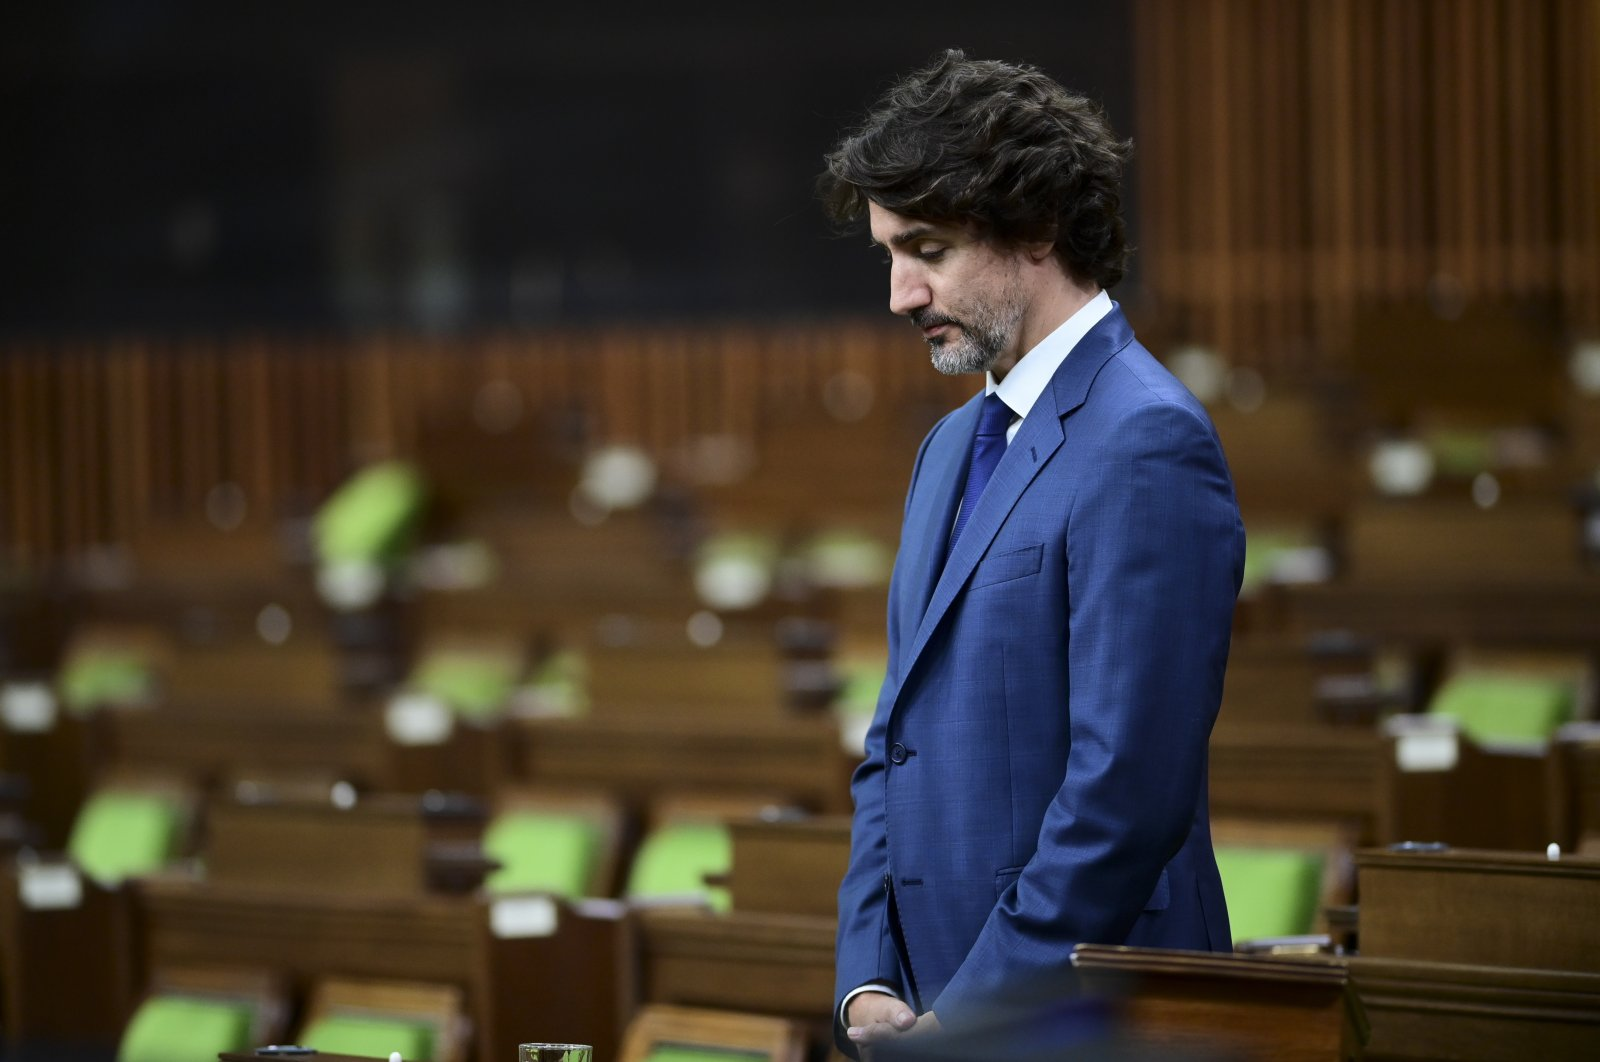 Canadian Prime Minister Justin Trudeau takes part in a moment of silence in the House of Commons on Parliament Hill in Ottawa, June 8, 2021, in response to the recent events in London, Ontario. (AP Photo)